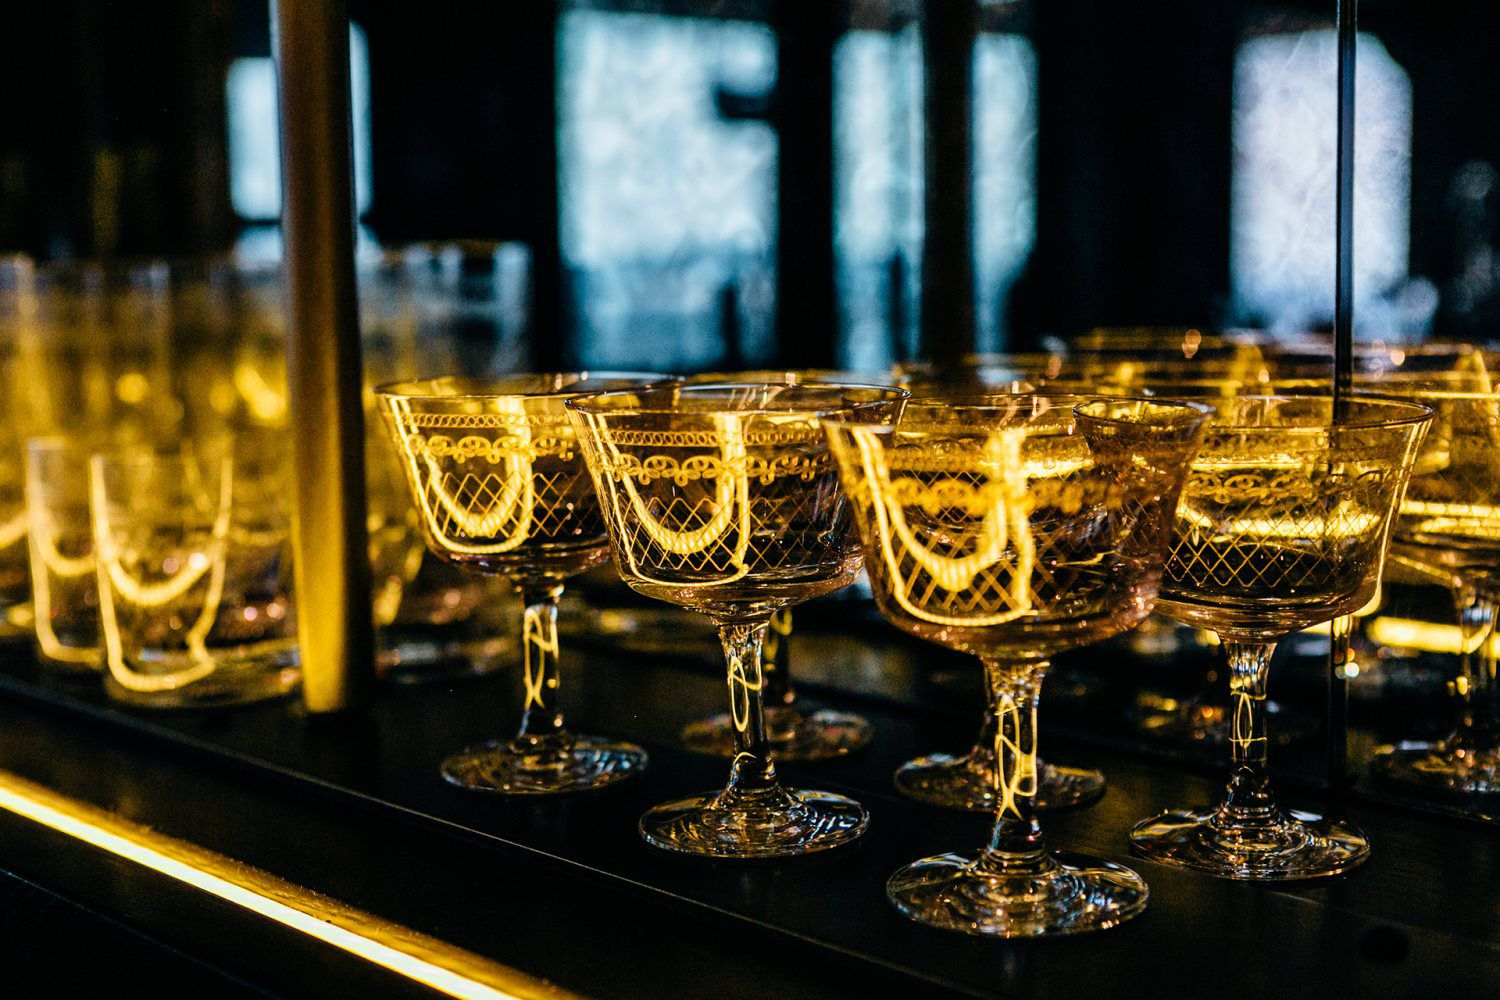 Glasses lined up at the bar